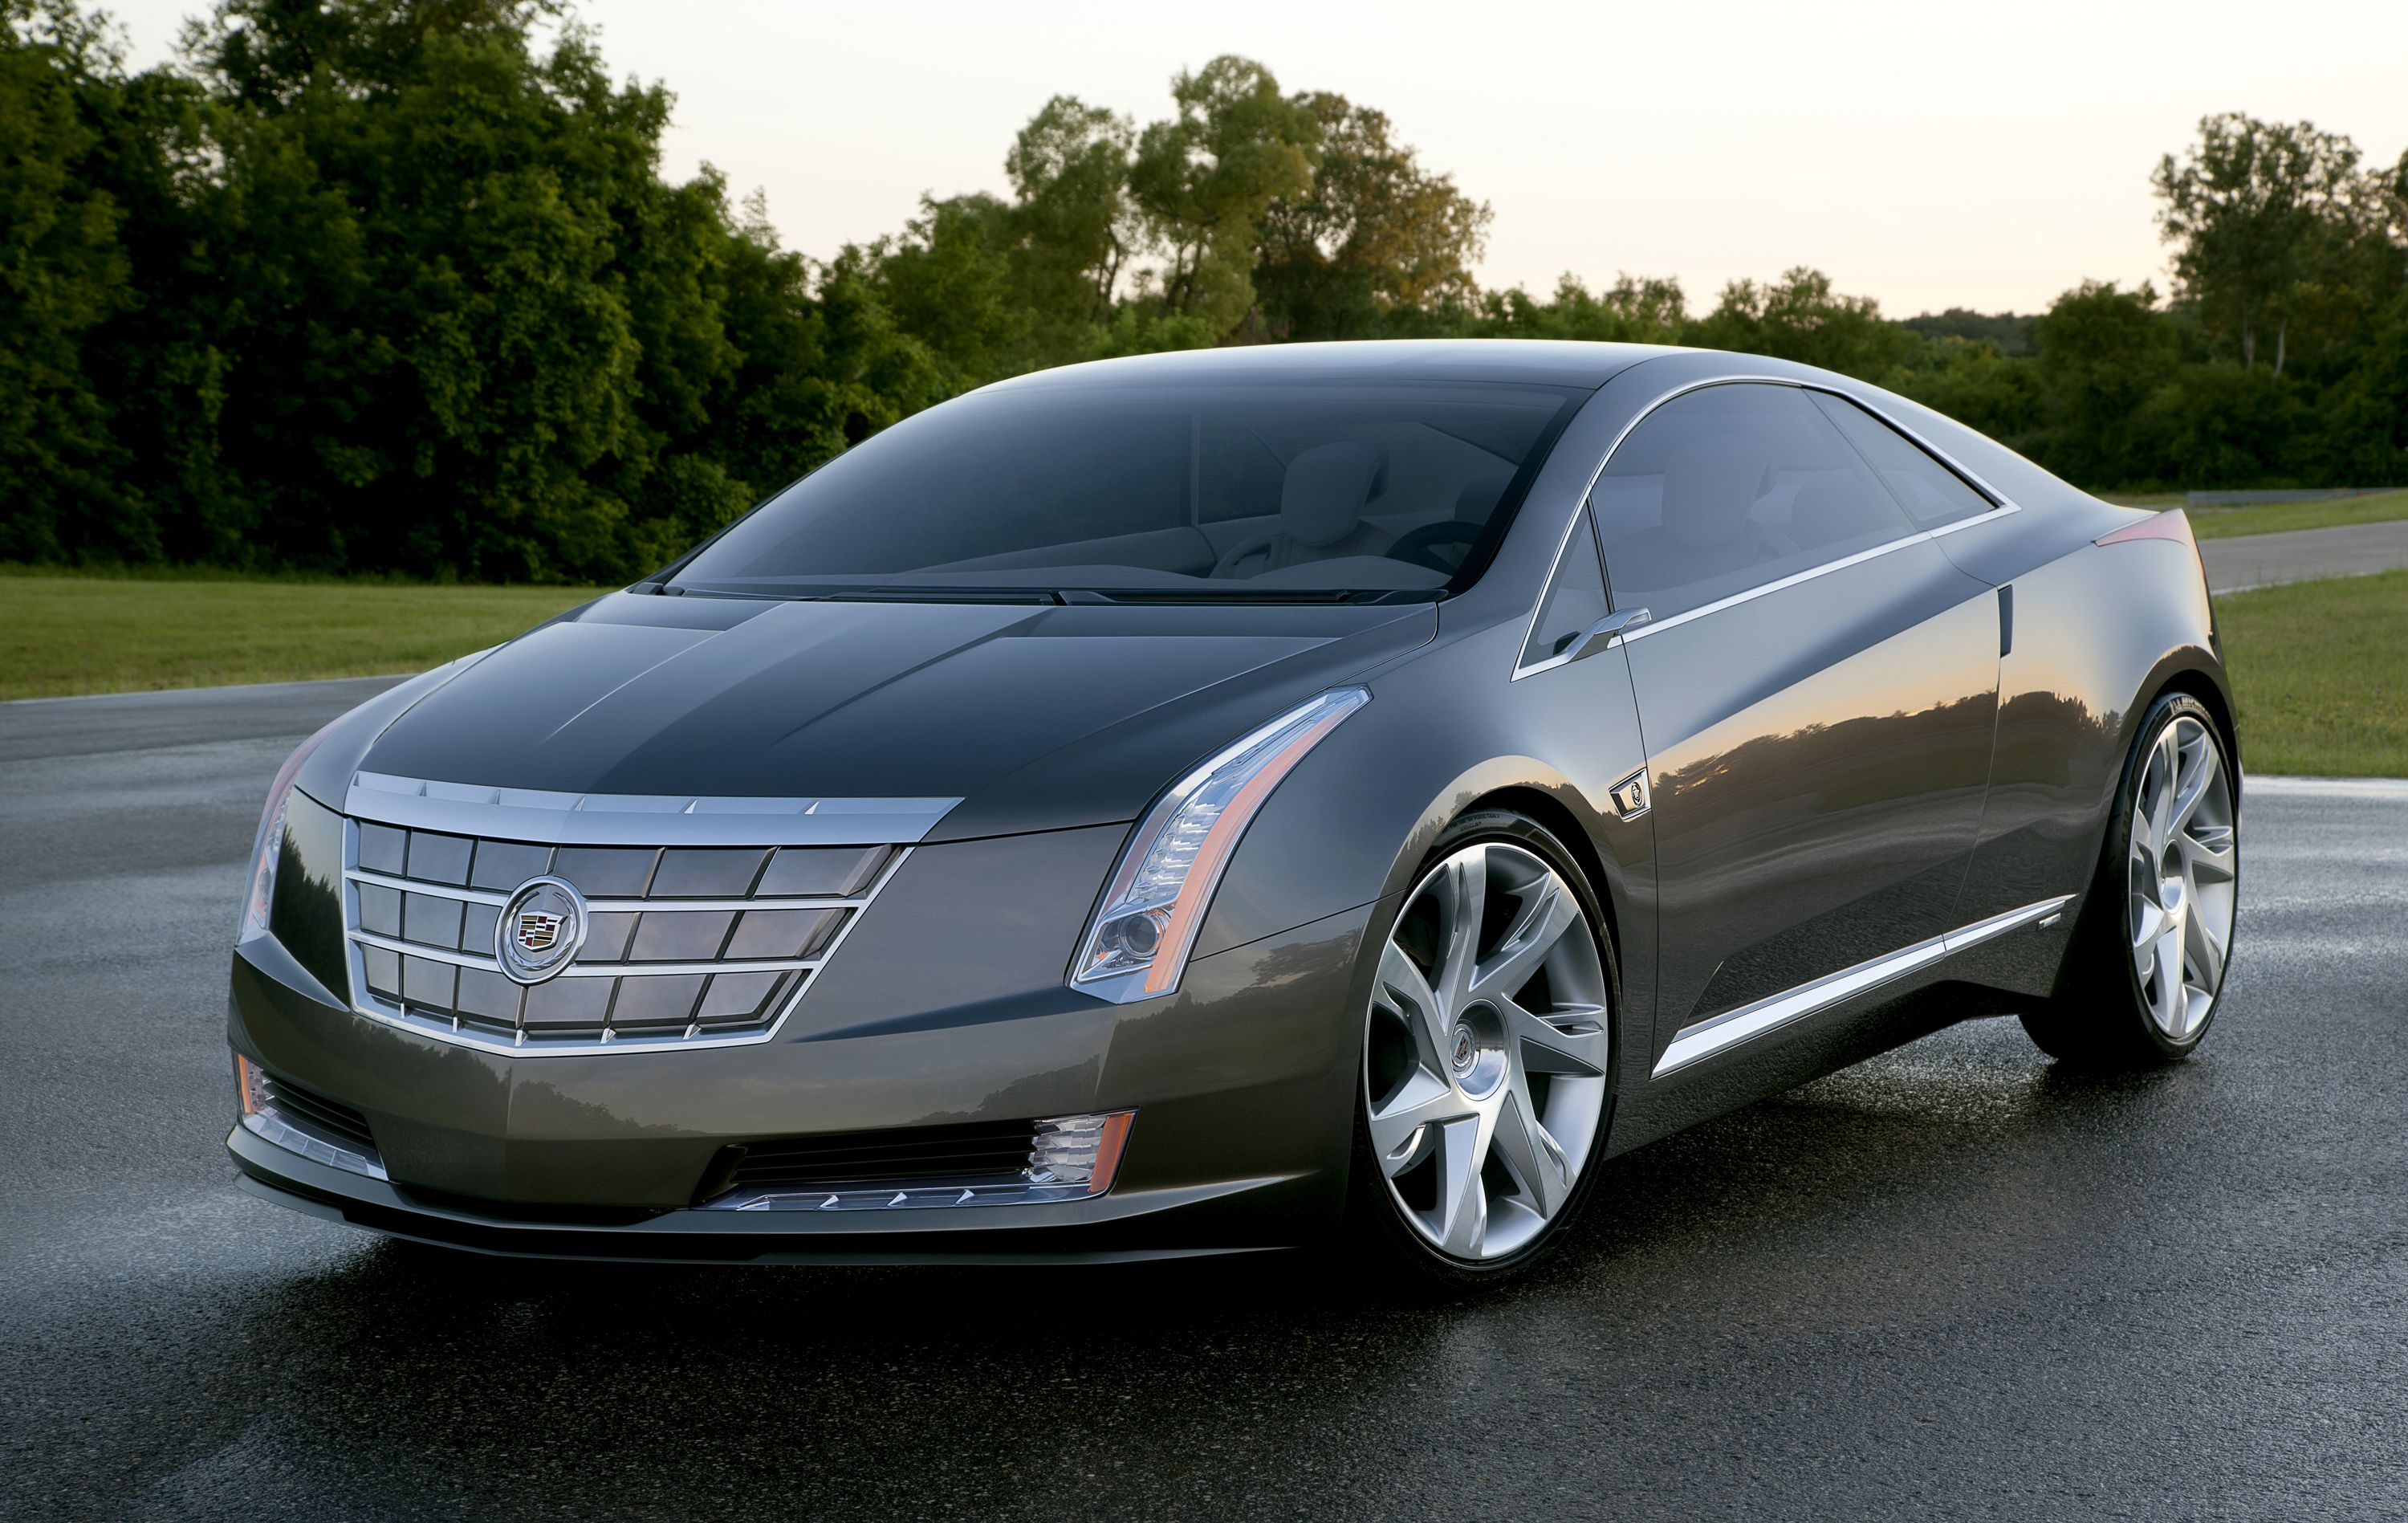 Cadillac to Introduce ELR Extended-Range Electric Car